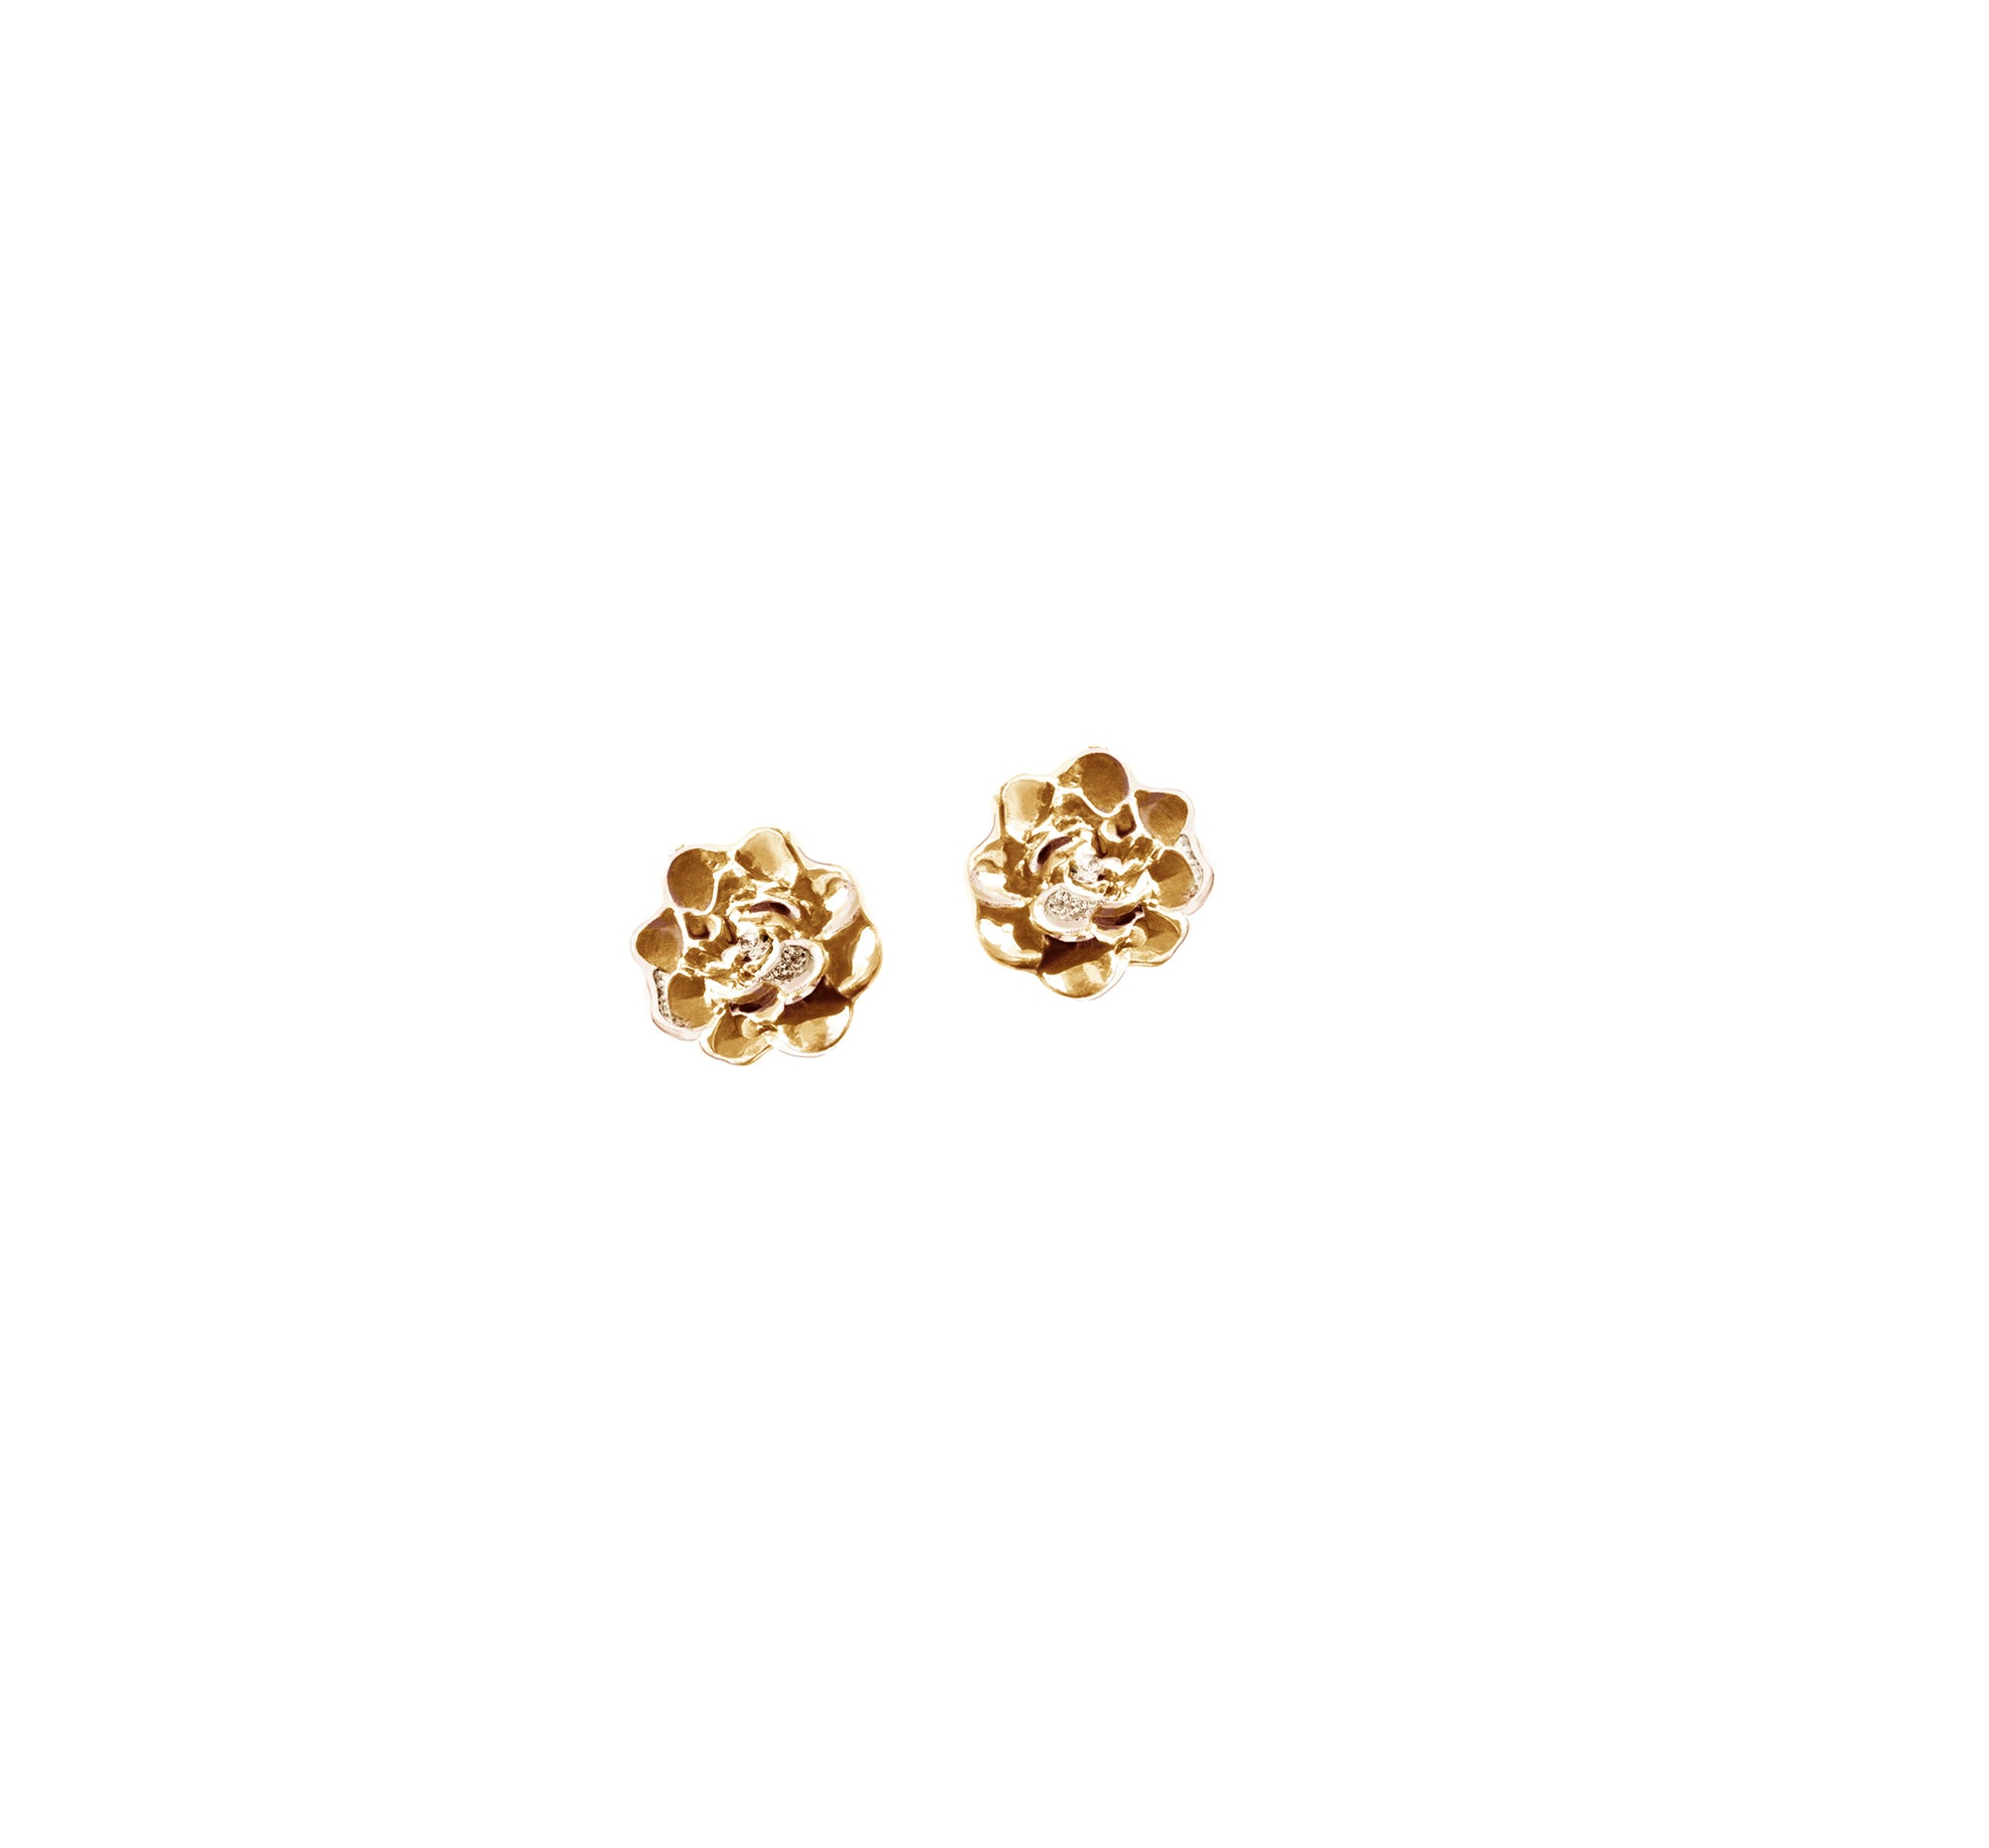 Camellia flower earrings in 18 KT yellow gold